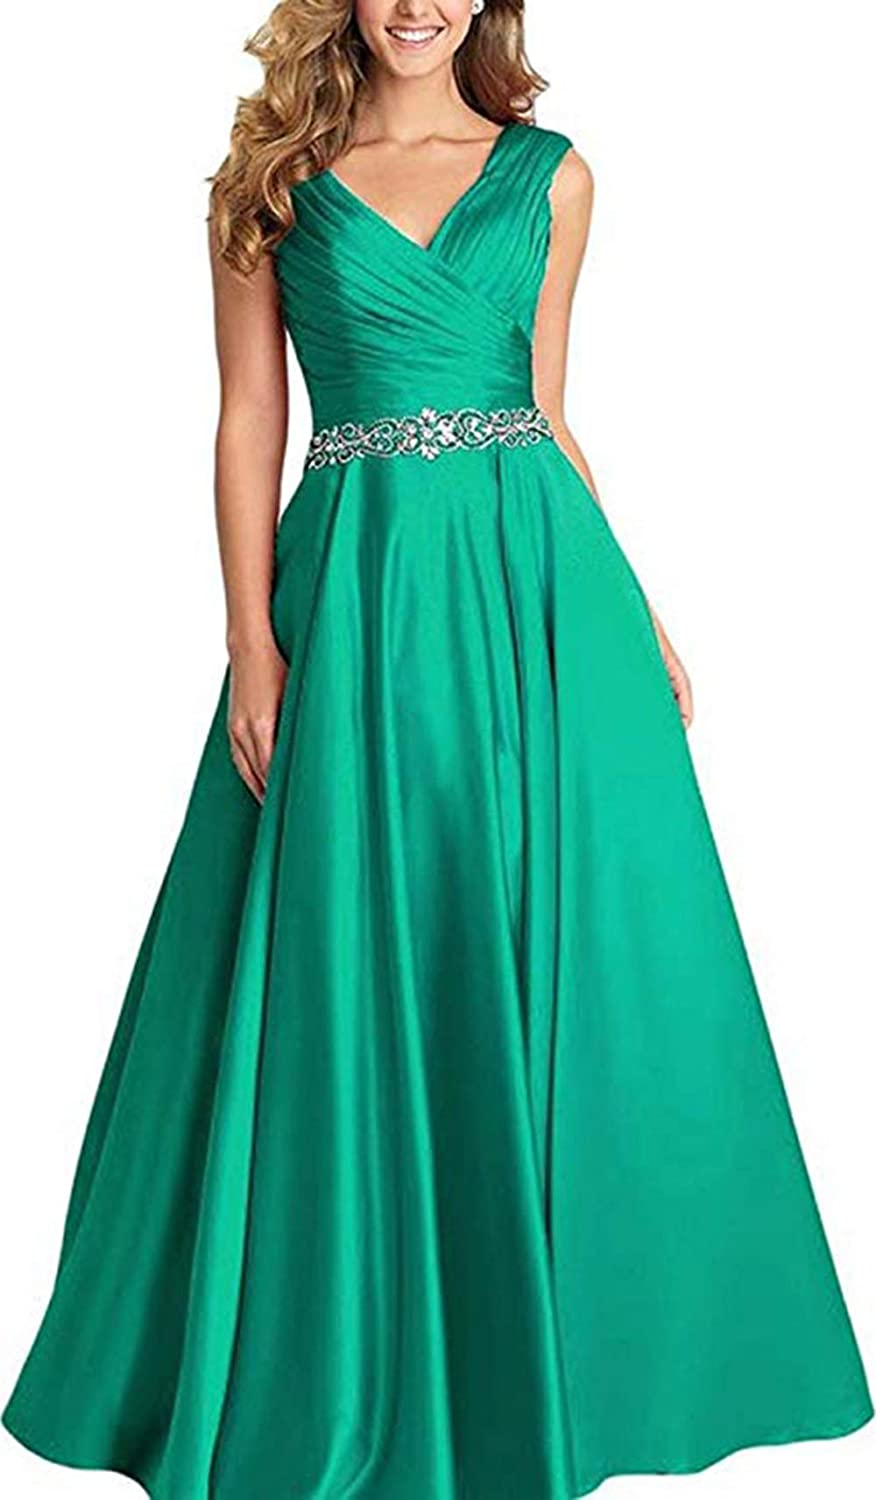 Emerald Green Ri Yun Women's V Neck Pleated Beaded Prom Dresses Long 2019 Satin Aline Formal Evening Ball Gowns with Pockets